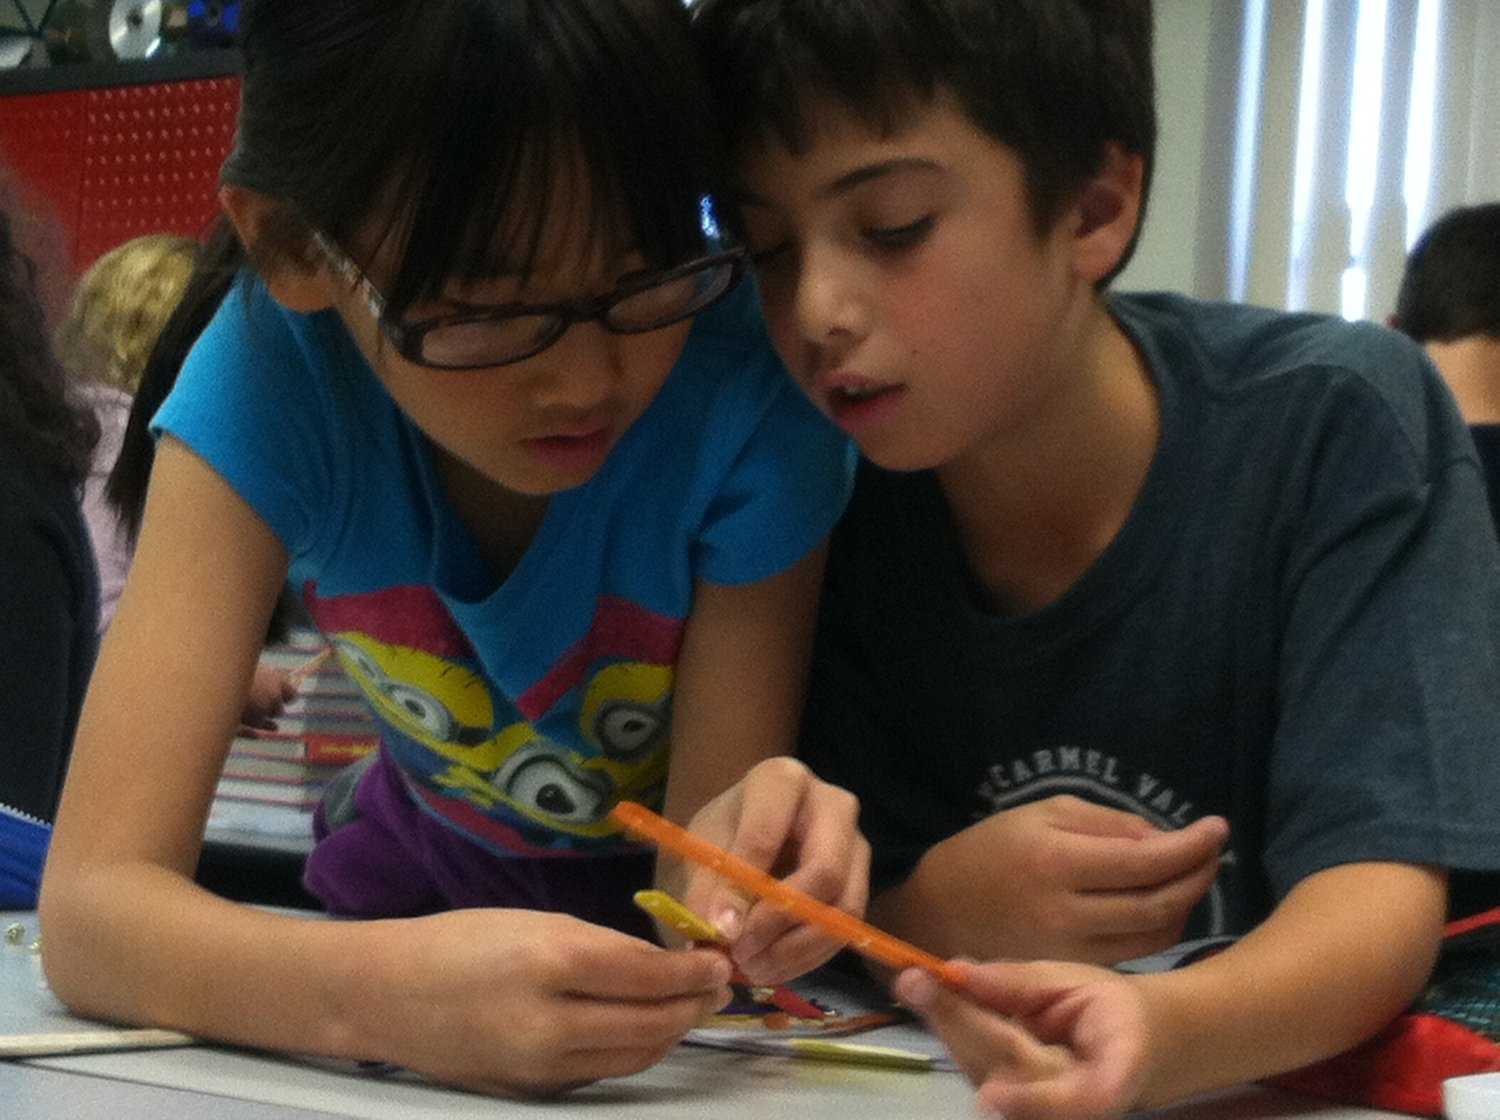 Collaborative learning at its best!